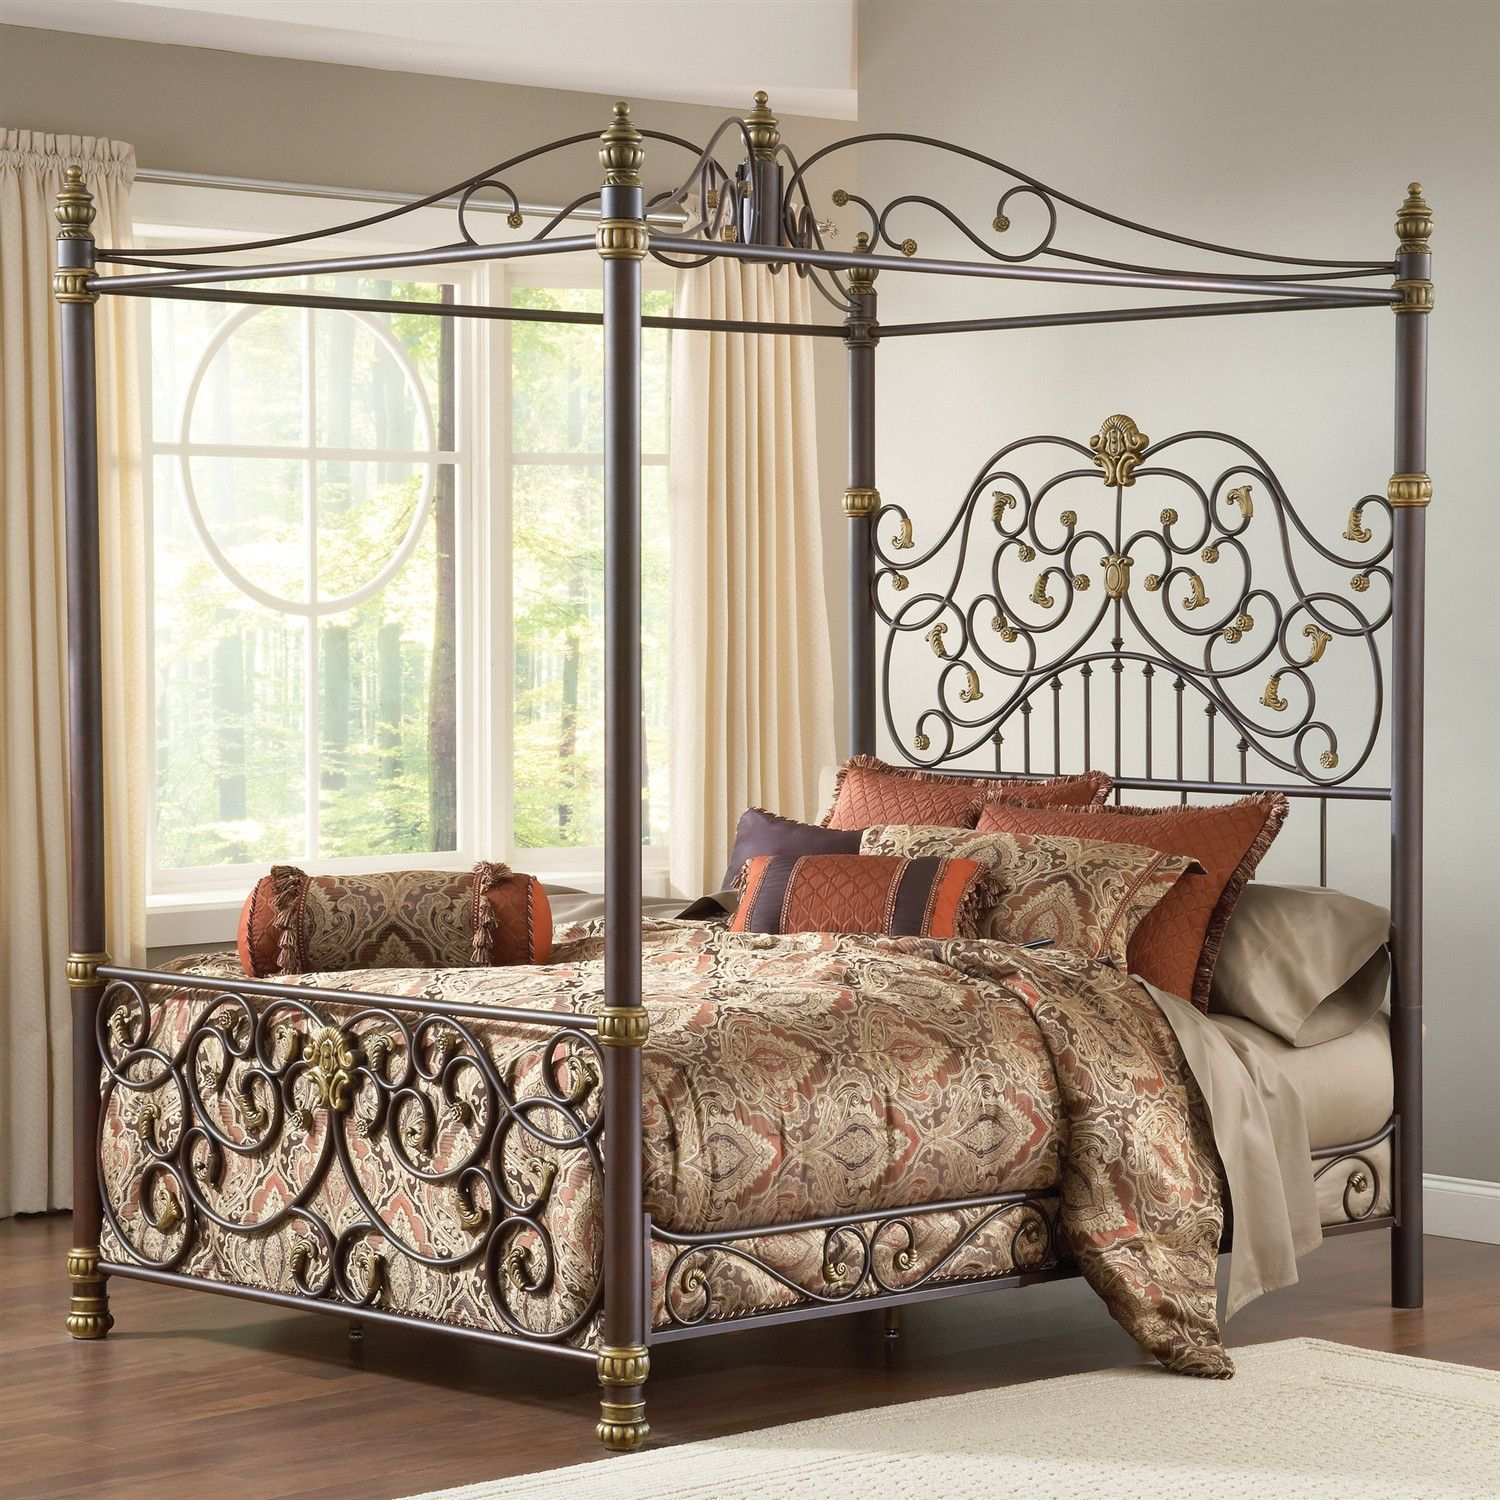 Best King Size Metal Canopy Bed With Posts And Intricate 640 x 480